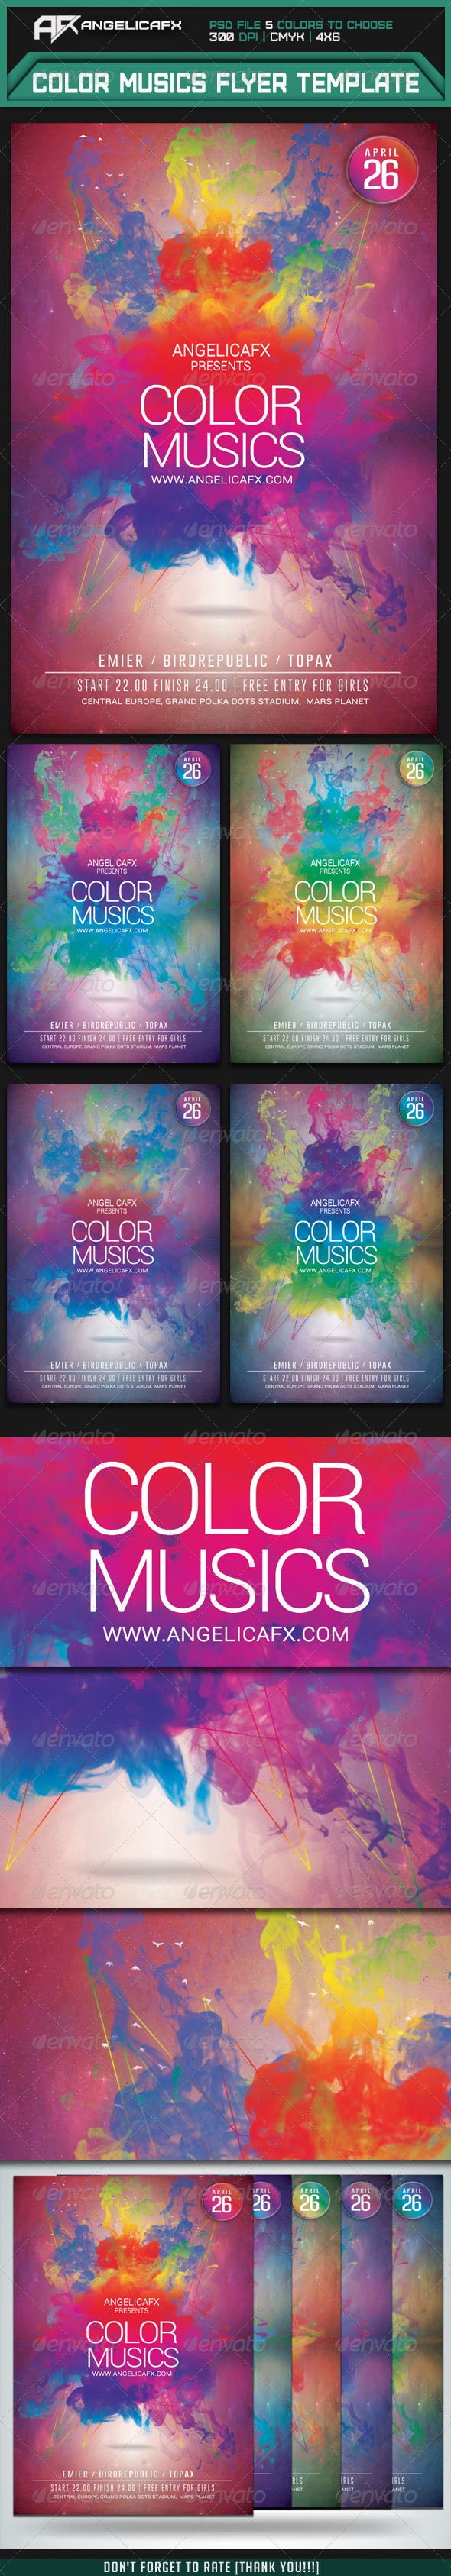 GraphicRiver Color Music Flyer Template 7337461